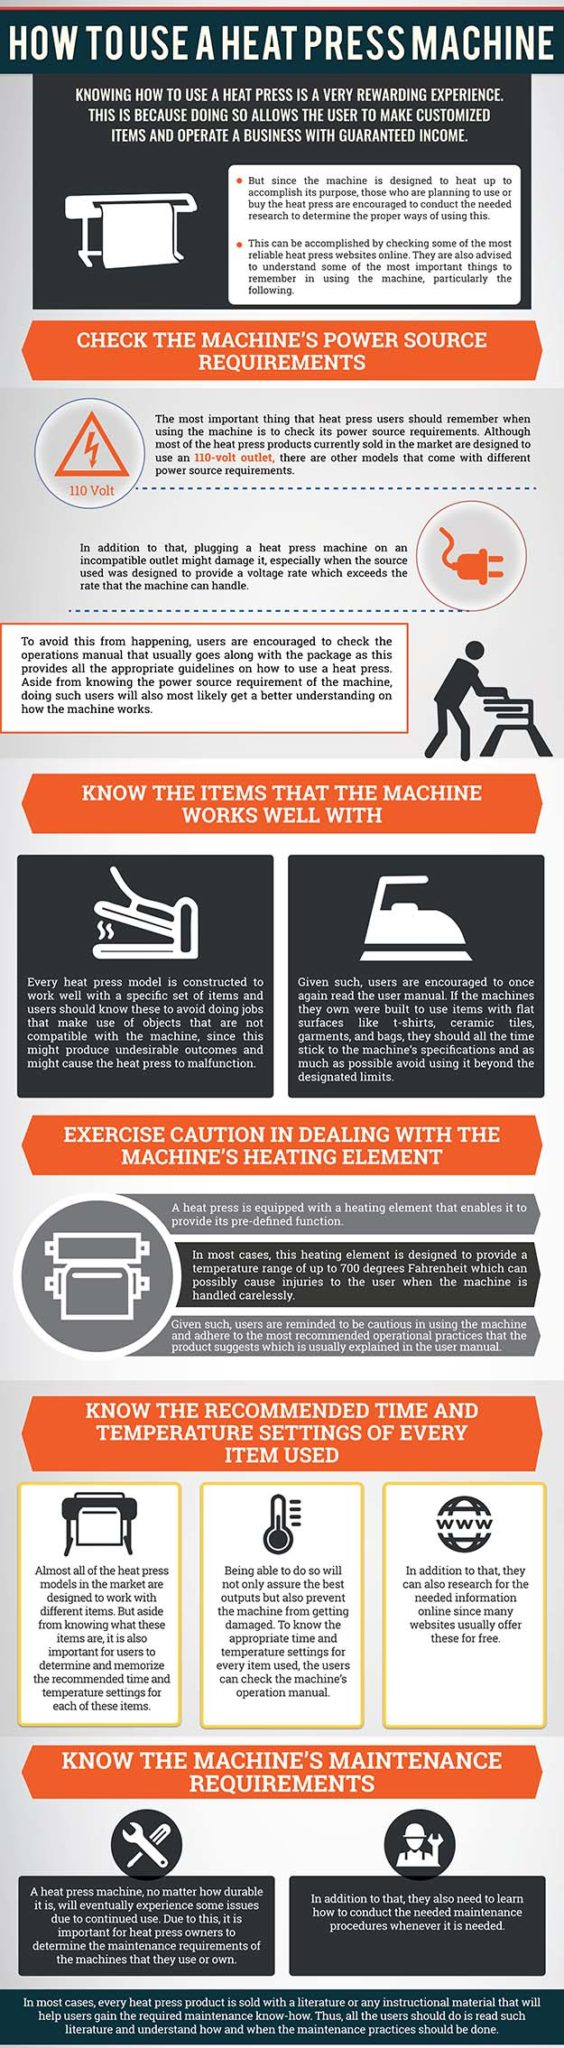 How to use a heat press